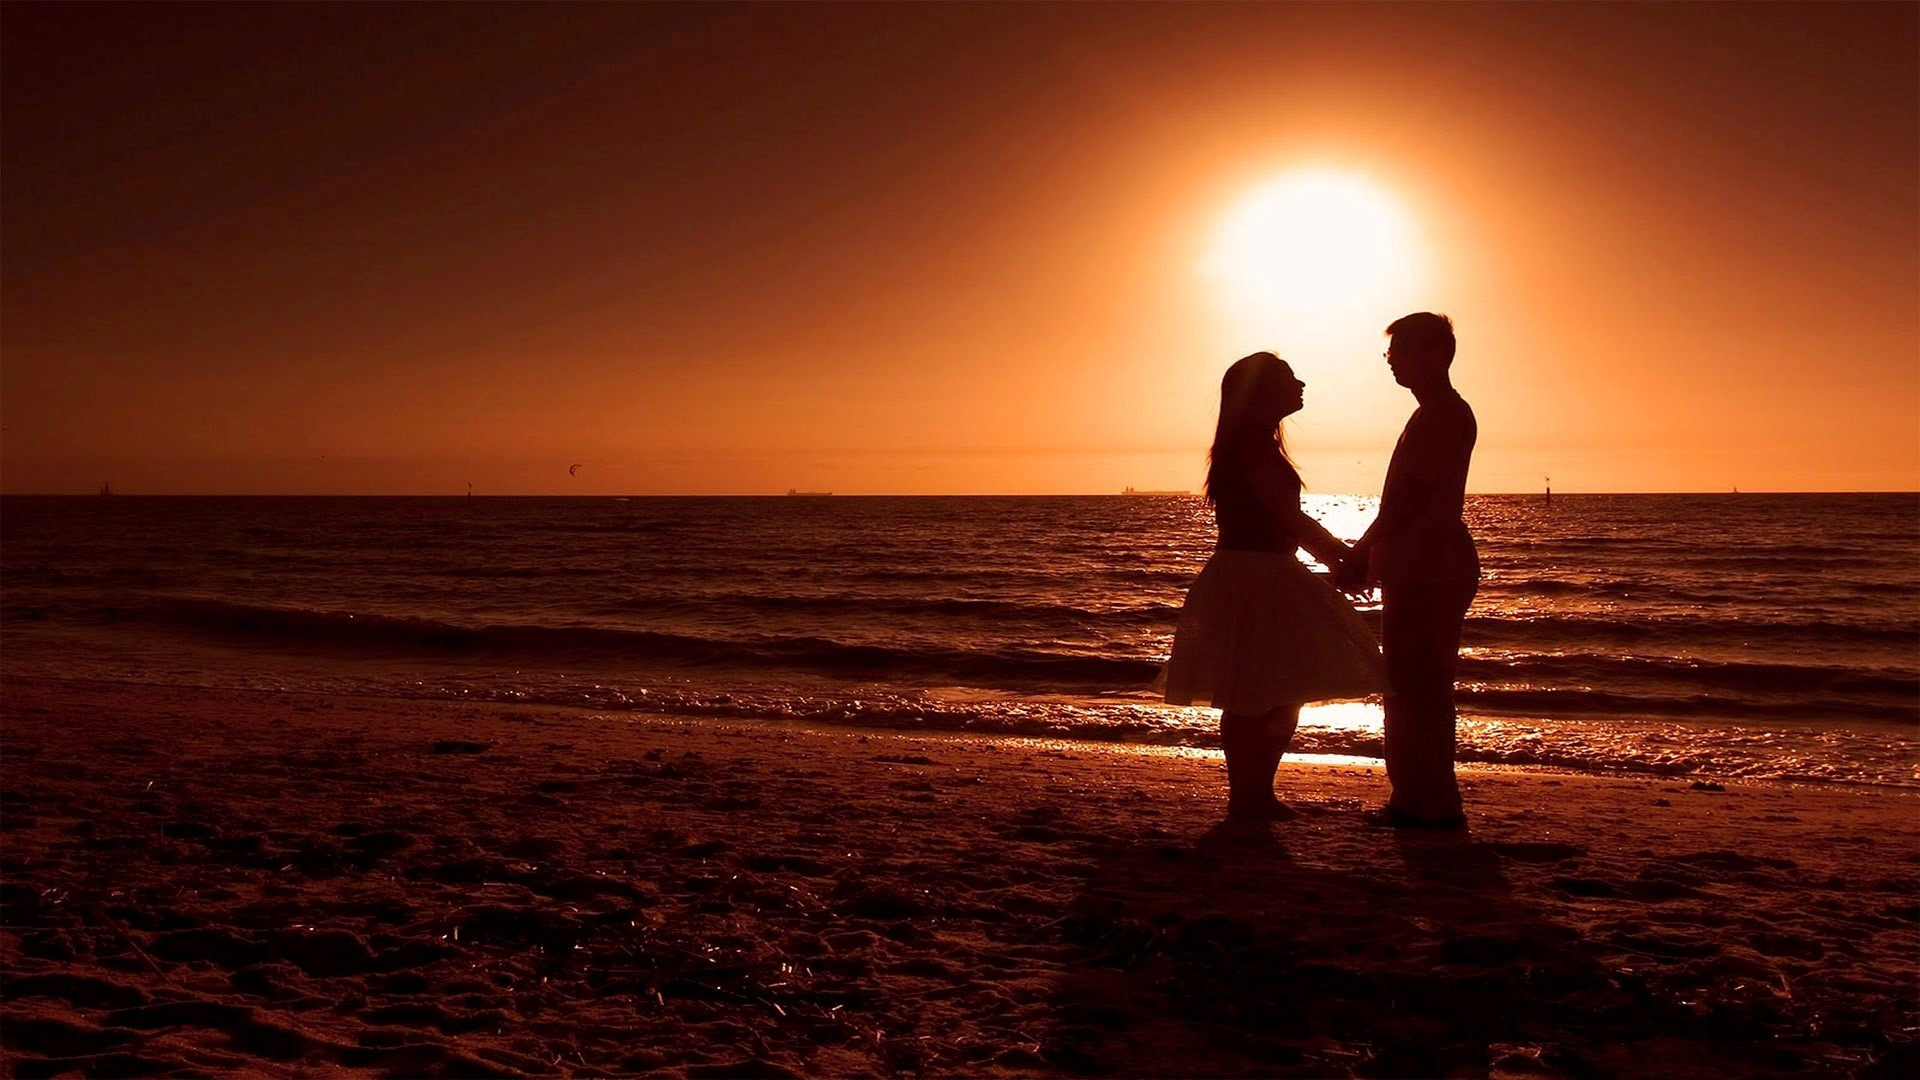 Love couple Full Hd Desktop Wallpaper : Romantic Wallpapers Best Wallpapers